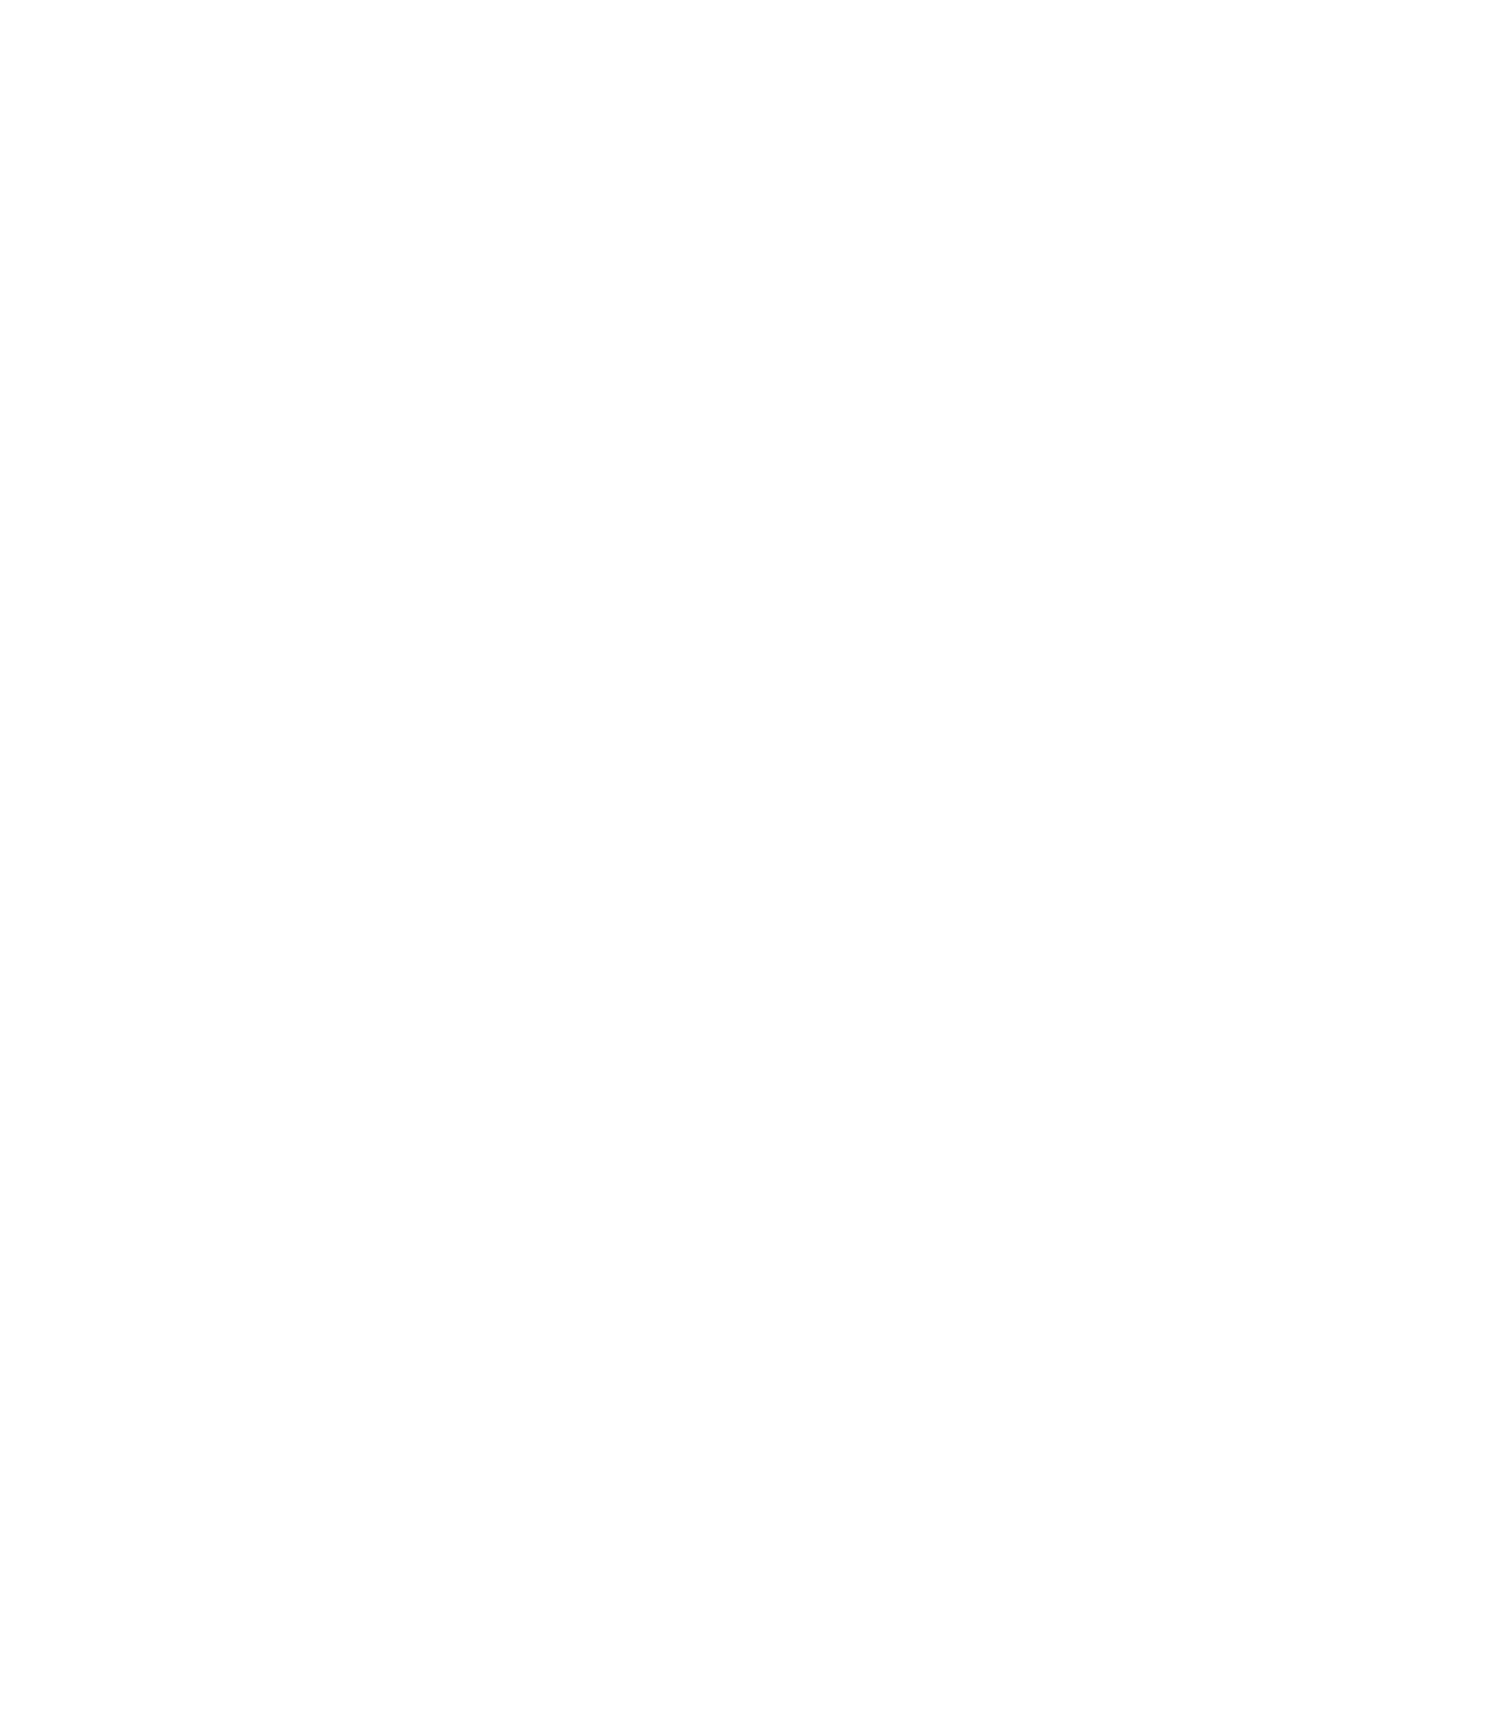 13.22 TATTOO STUDIO